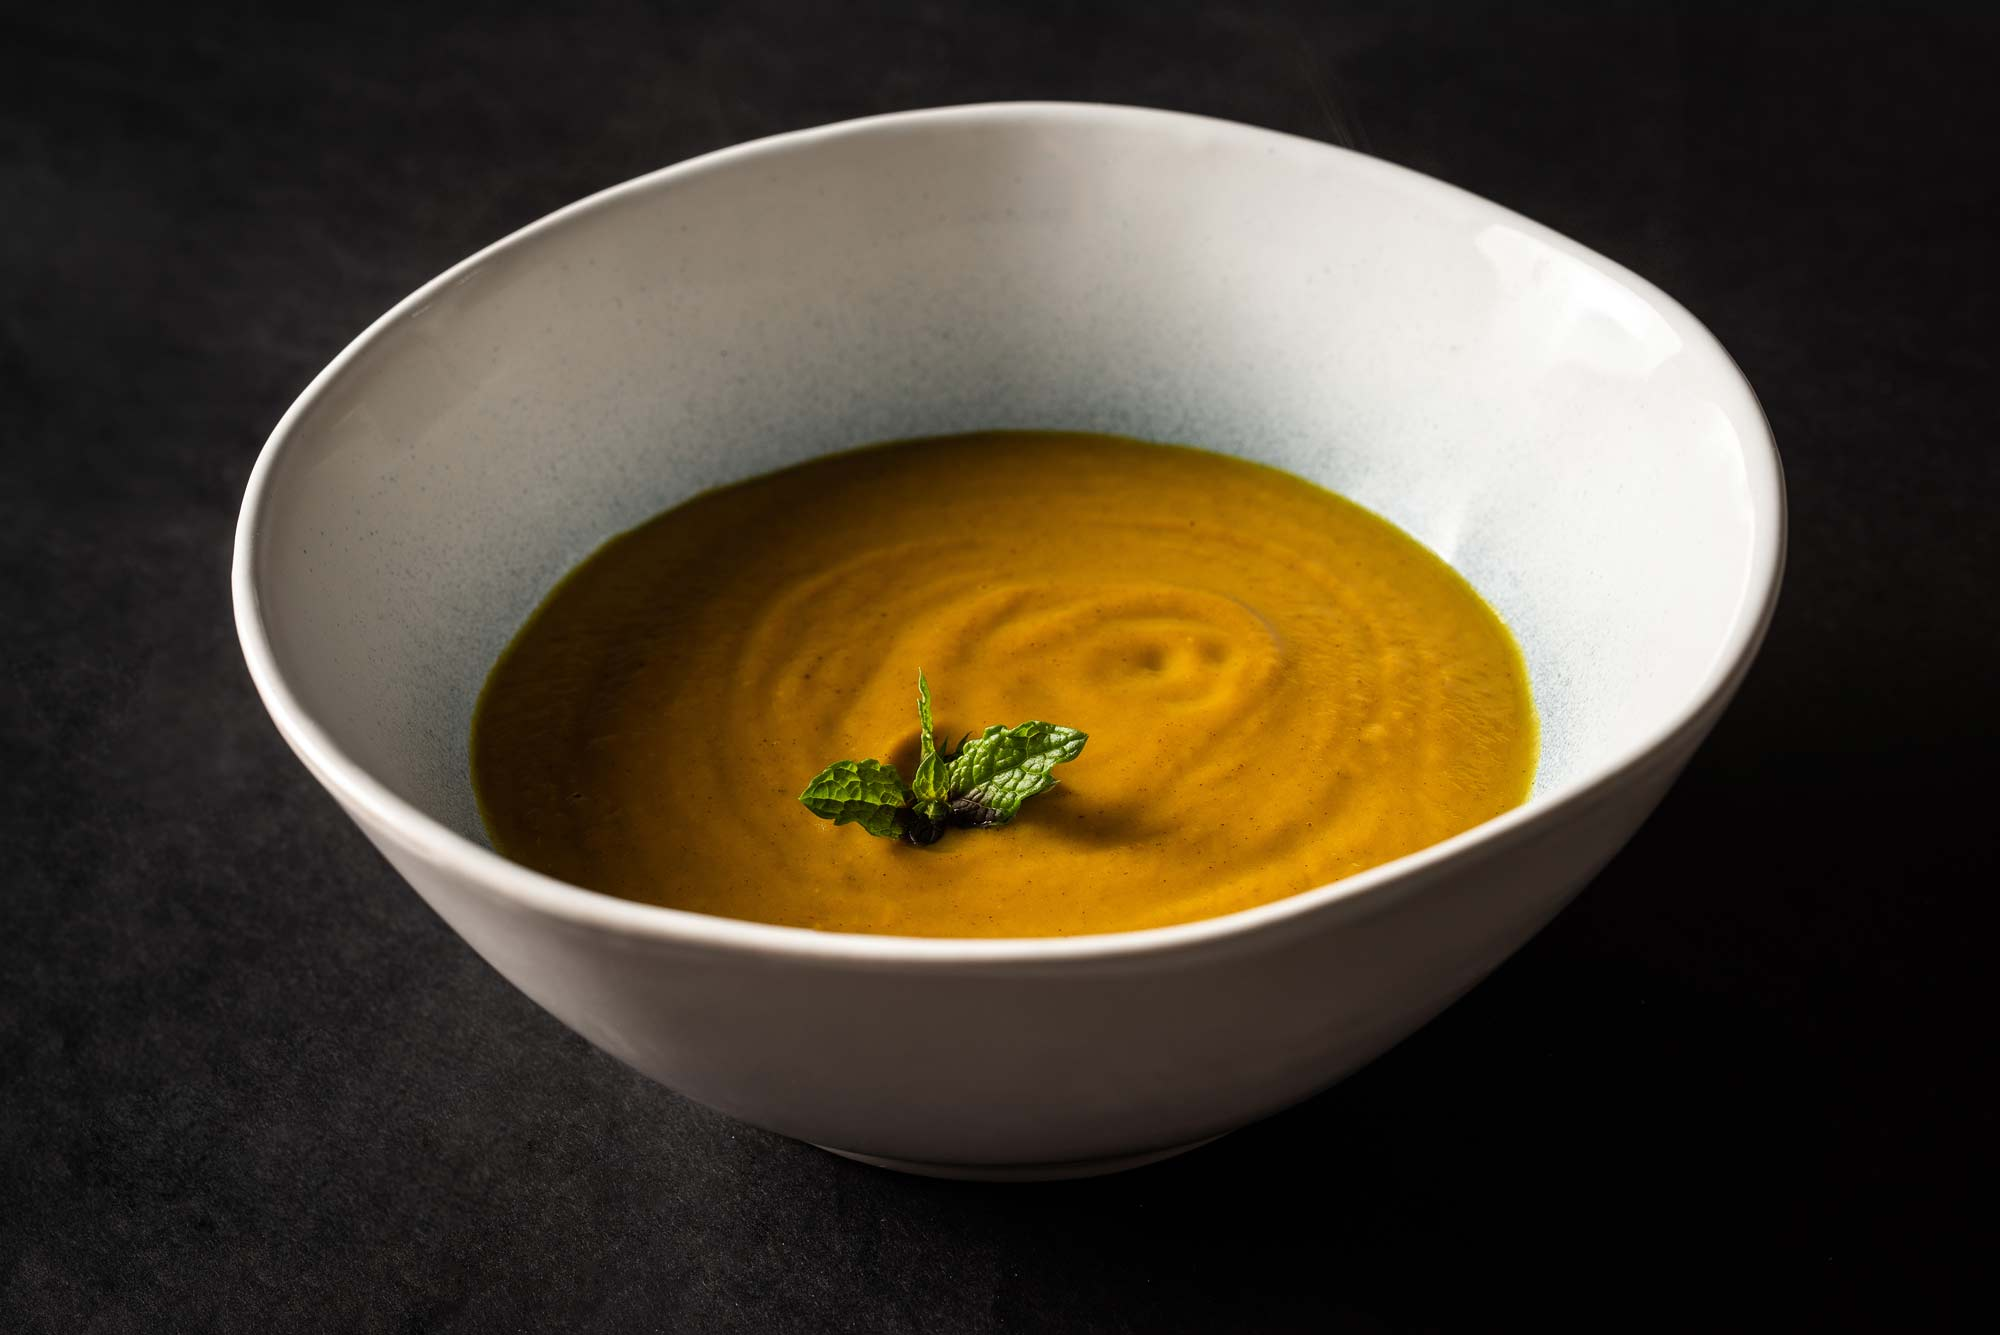 This pumpkin soup will kick your tastebuds into orbit.